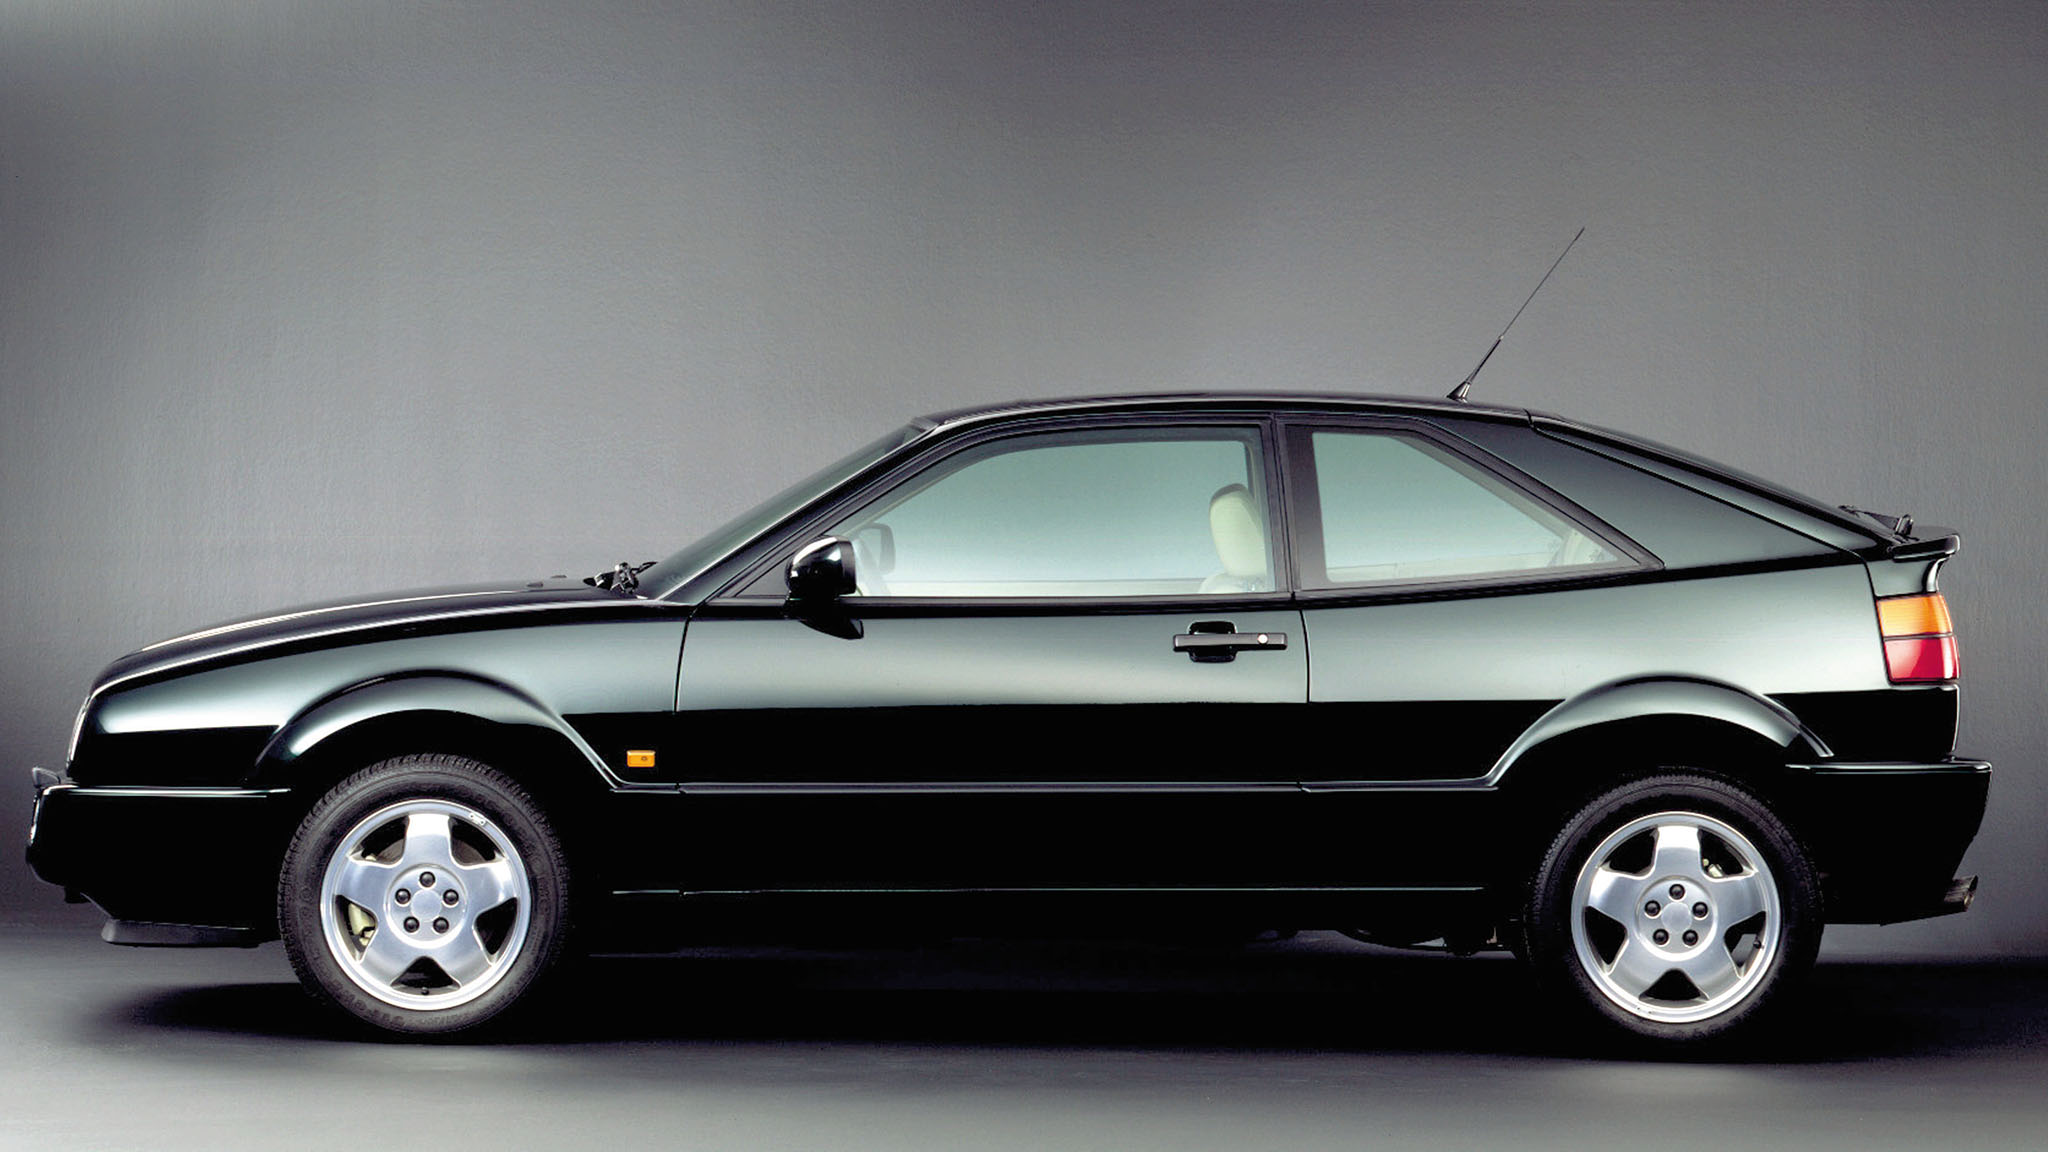 The VW Corrado Took Active Rear Spoilers Mainstream in the '80s